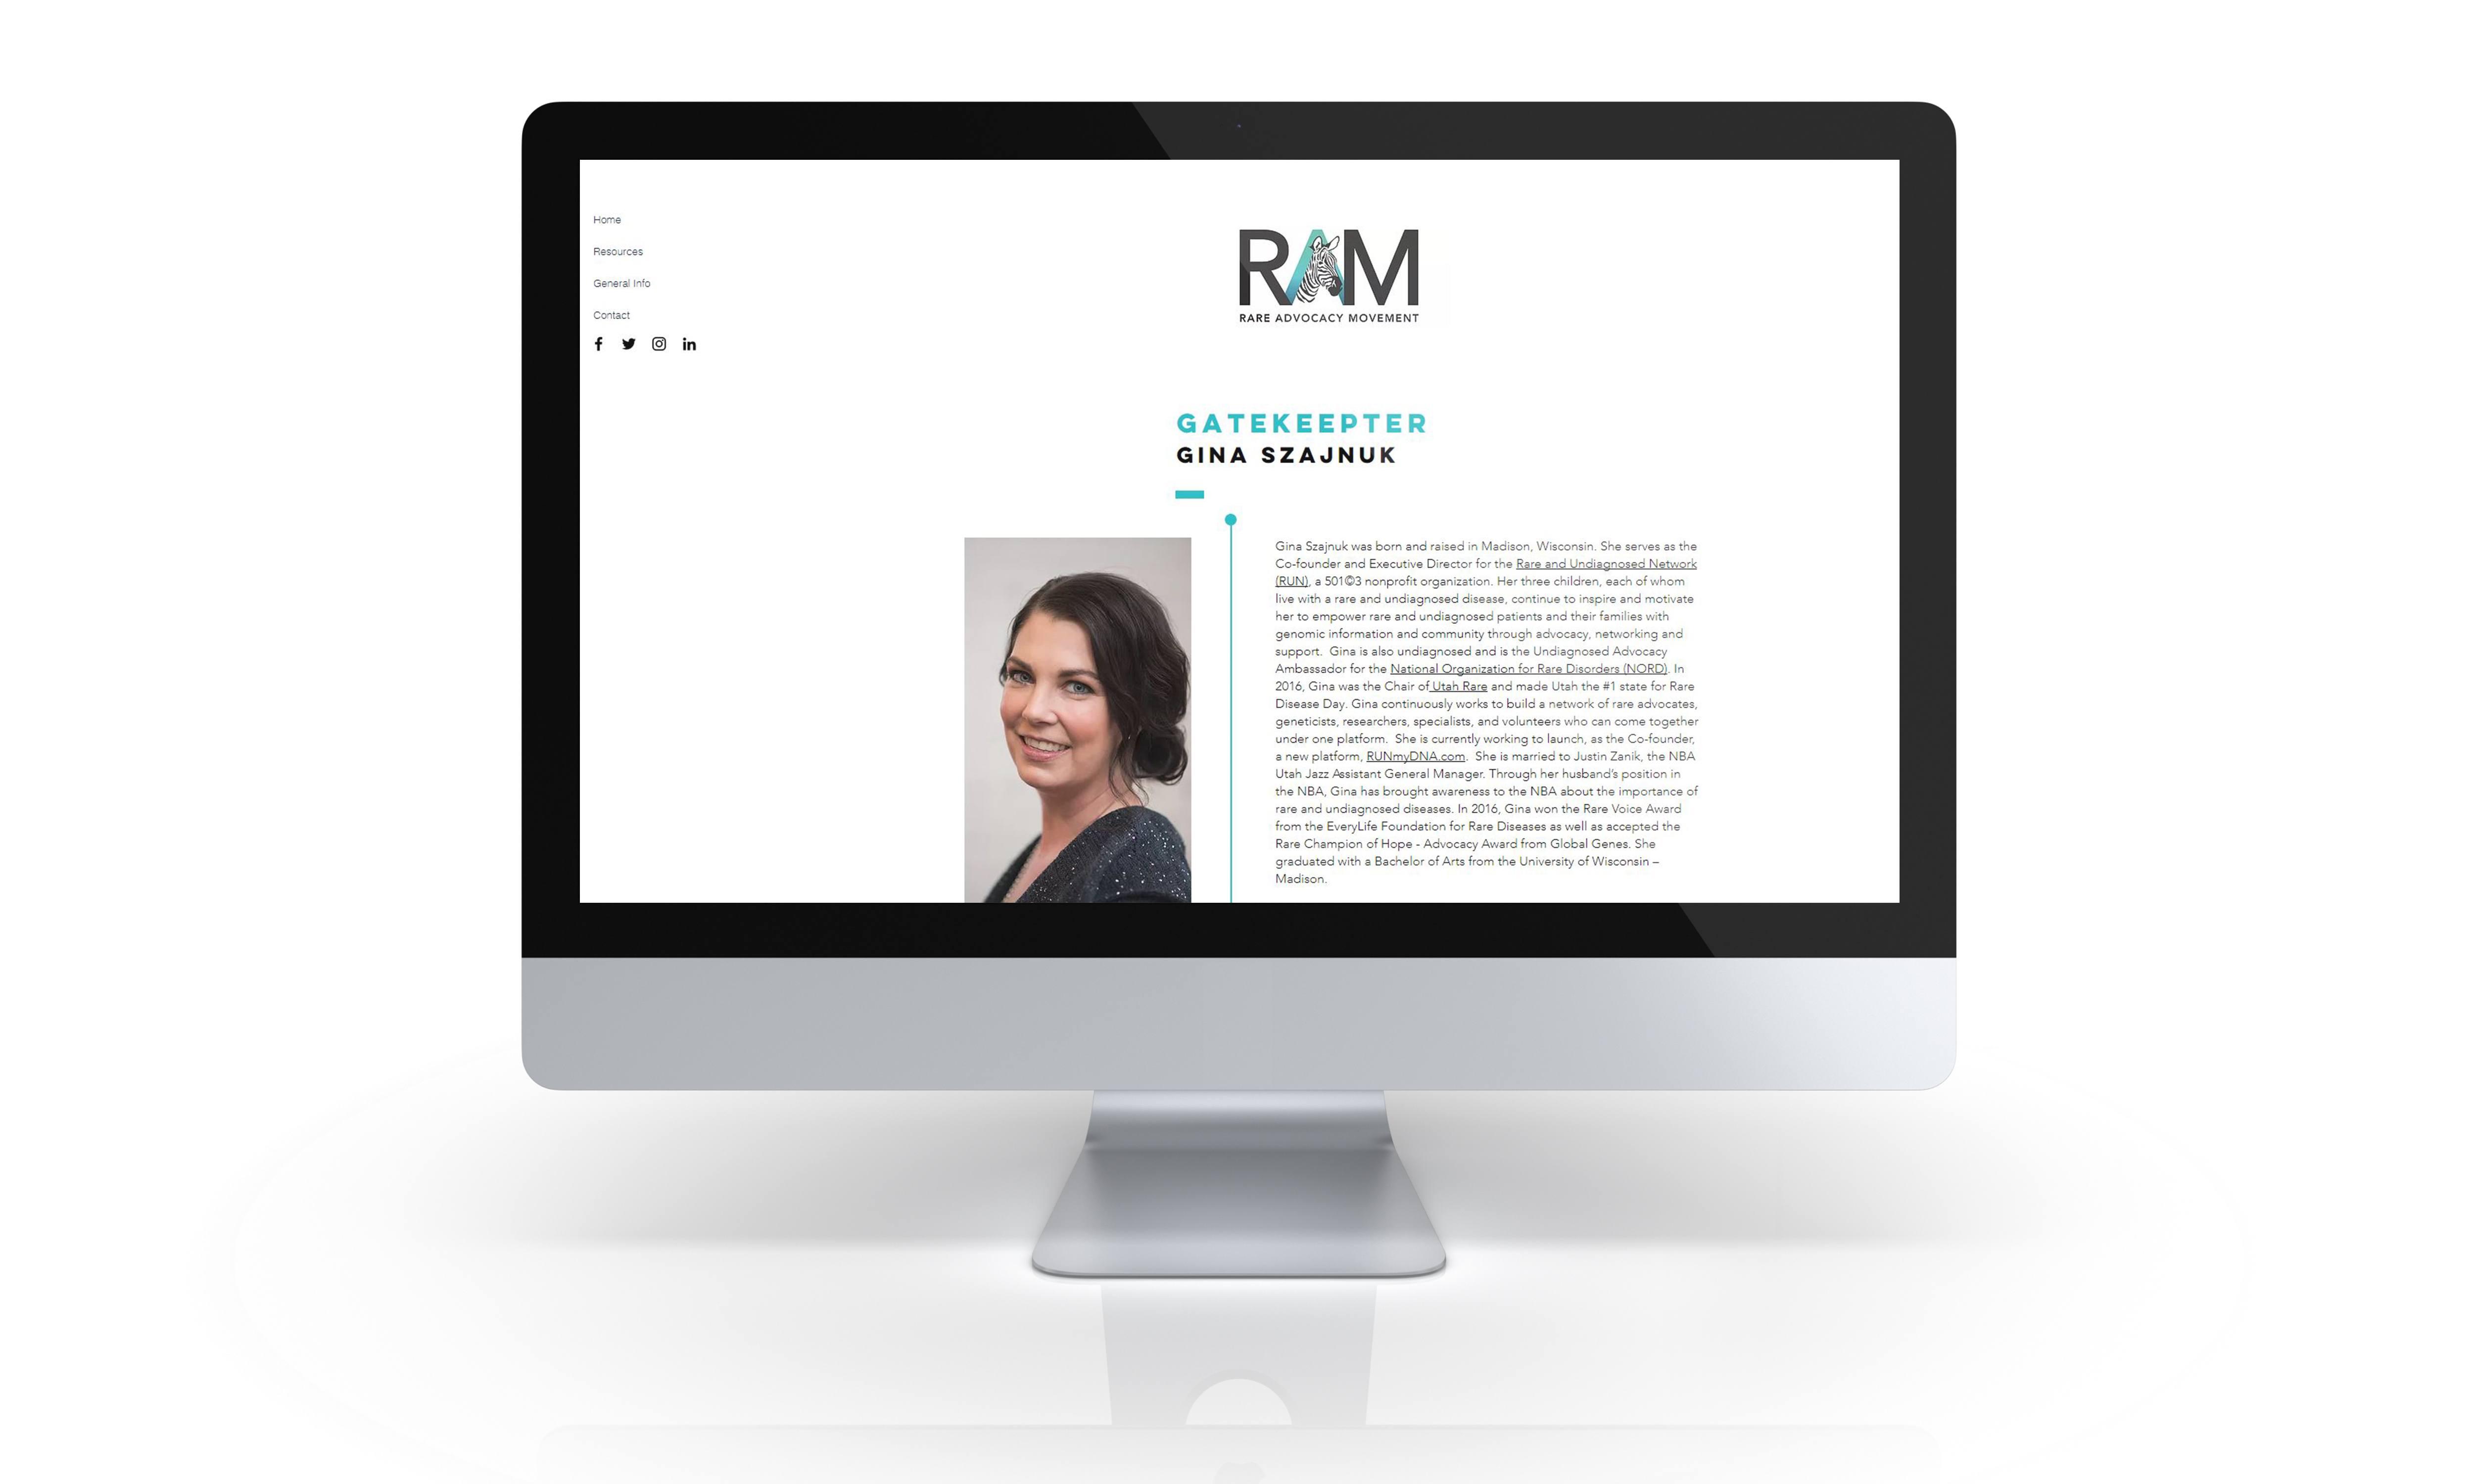 Profile Page in Website